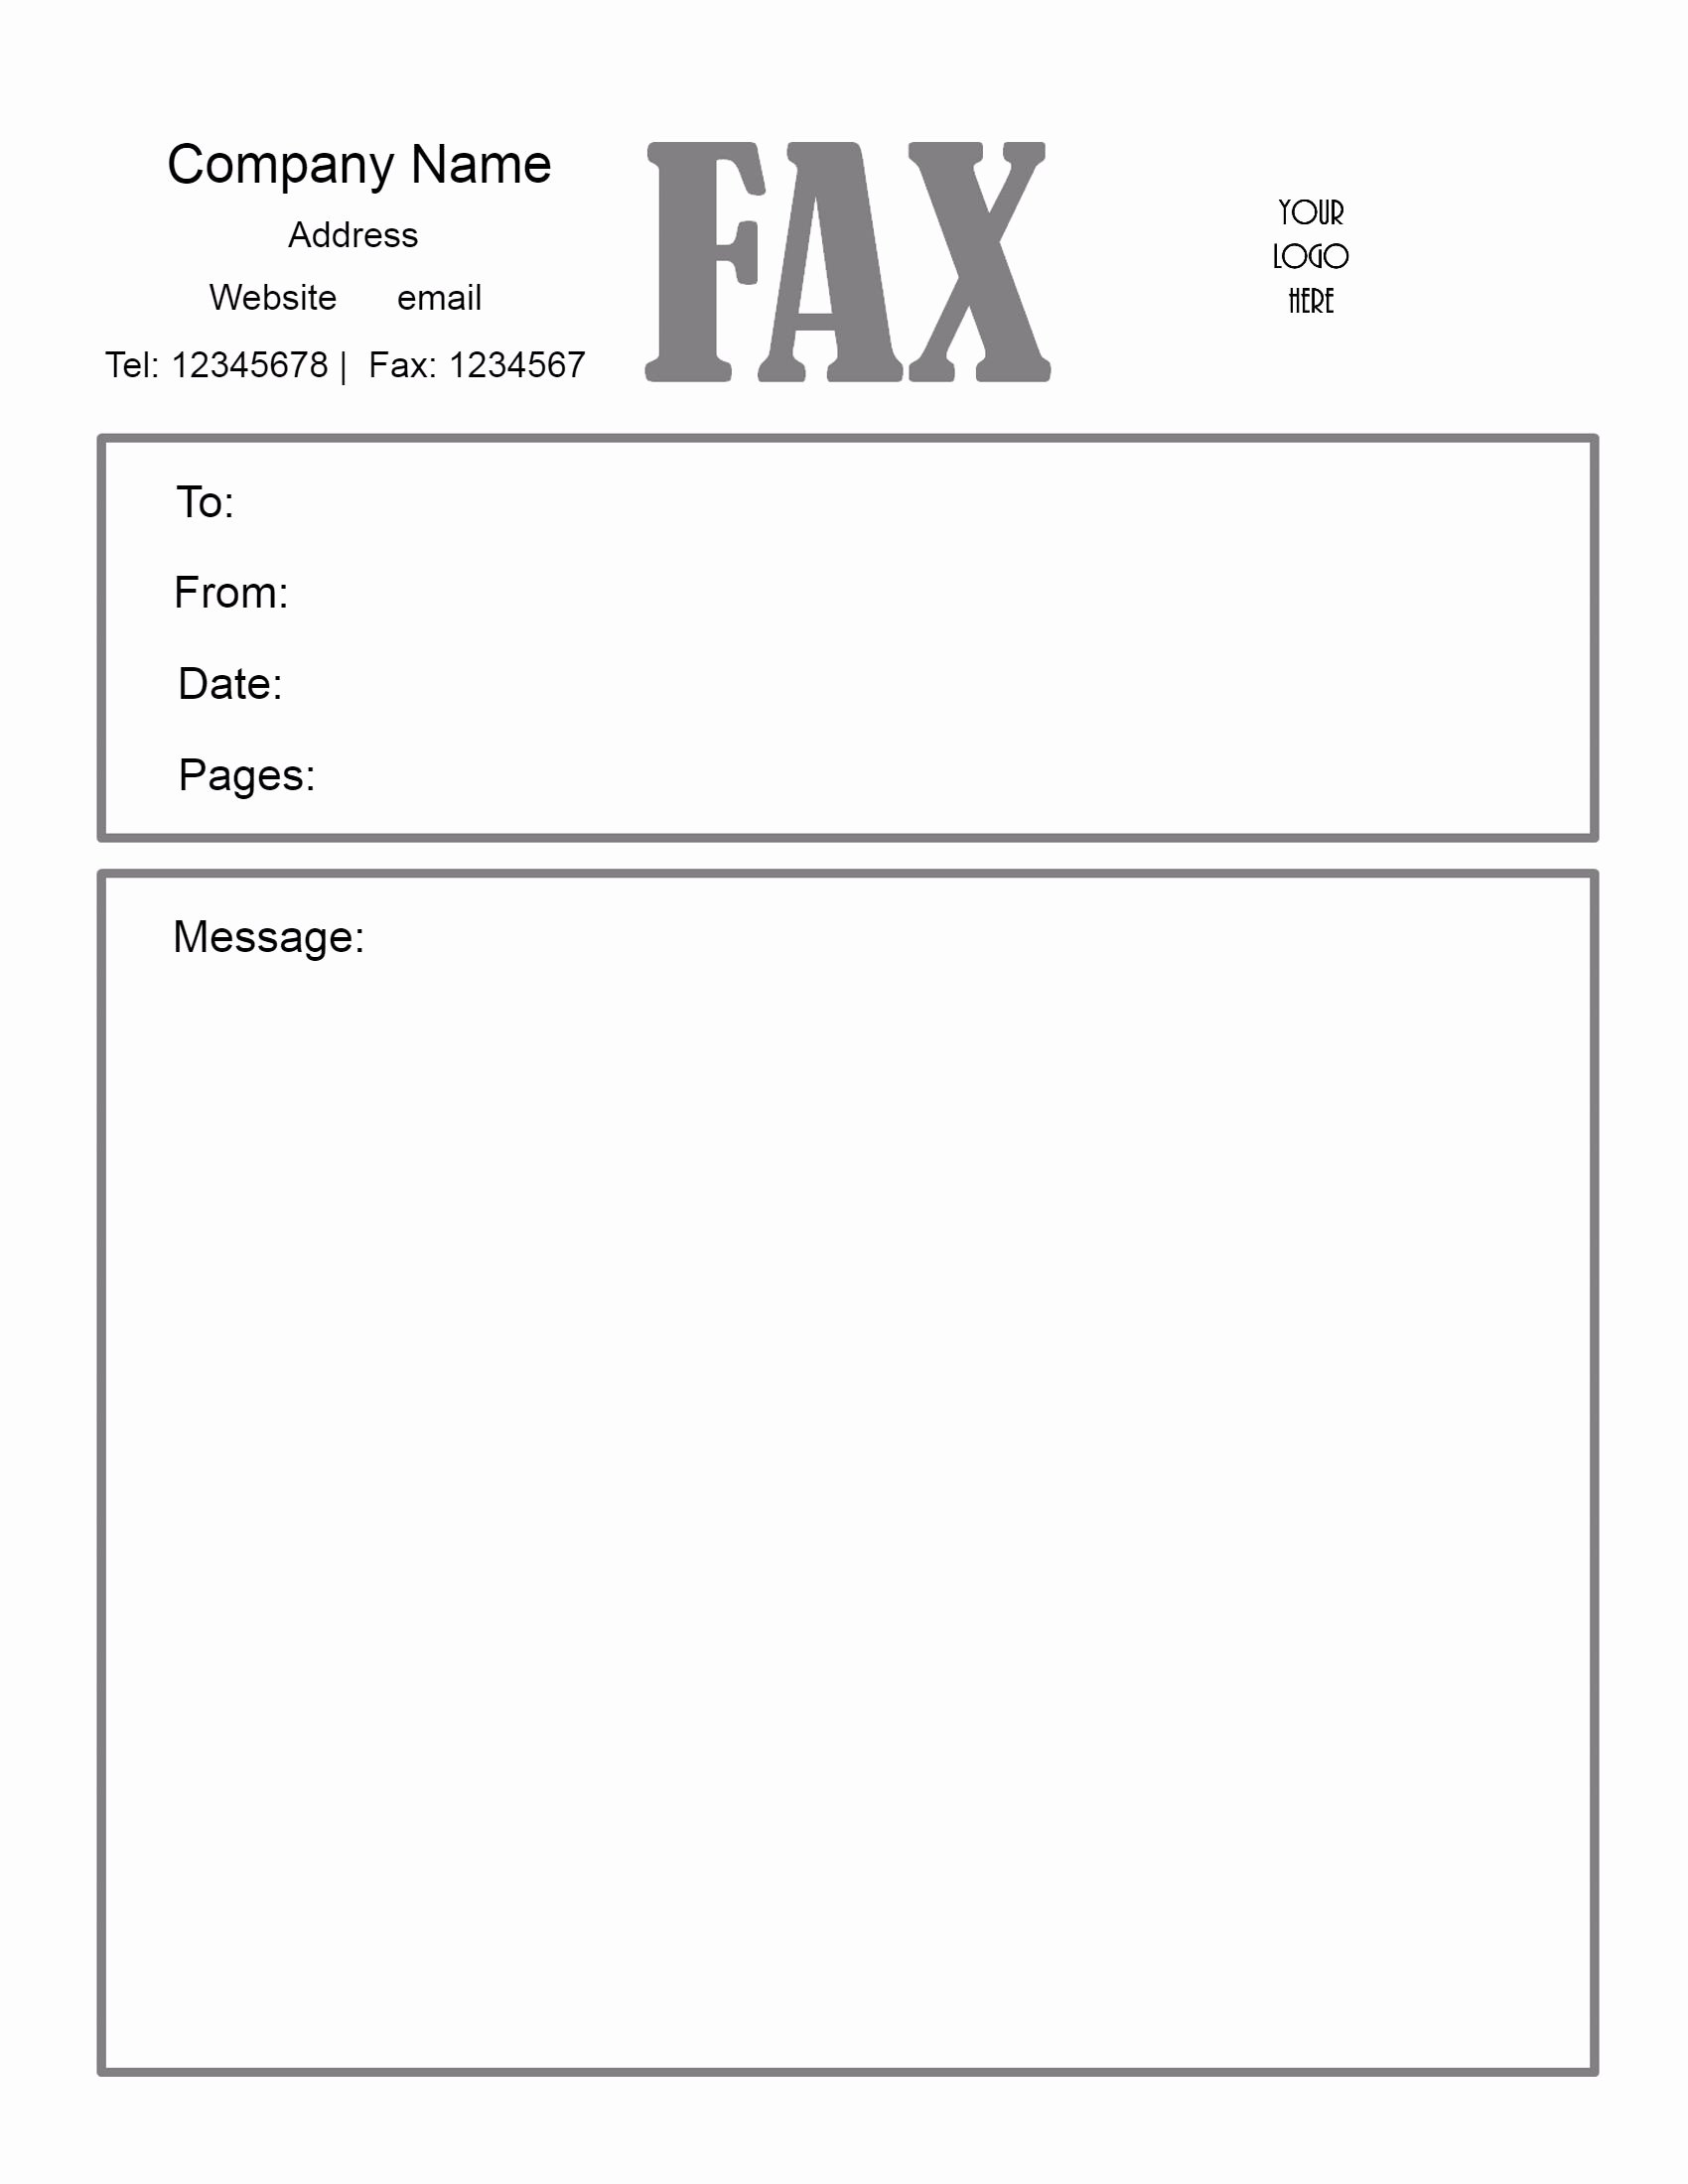 Free Fax Cover Letter Template